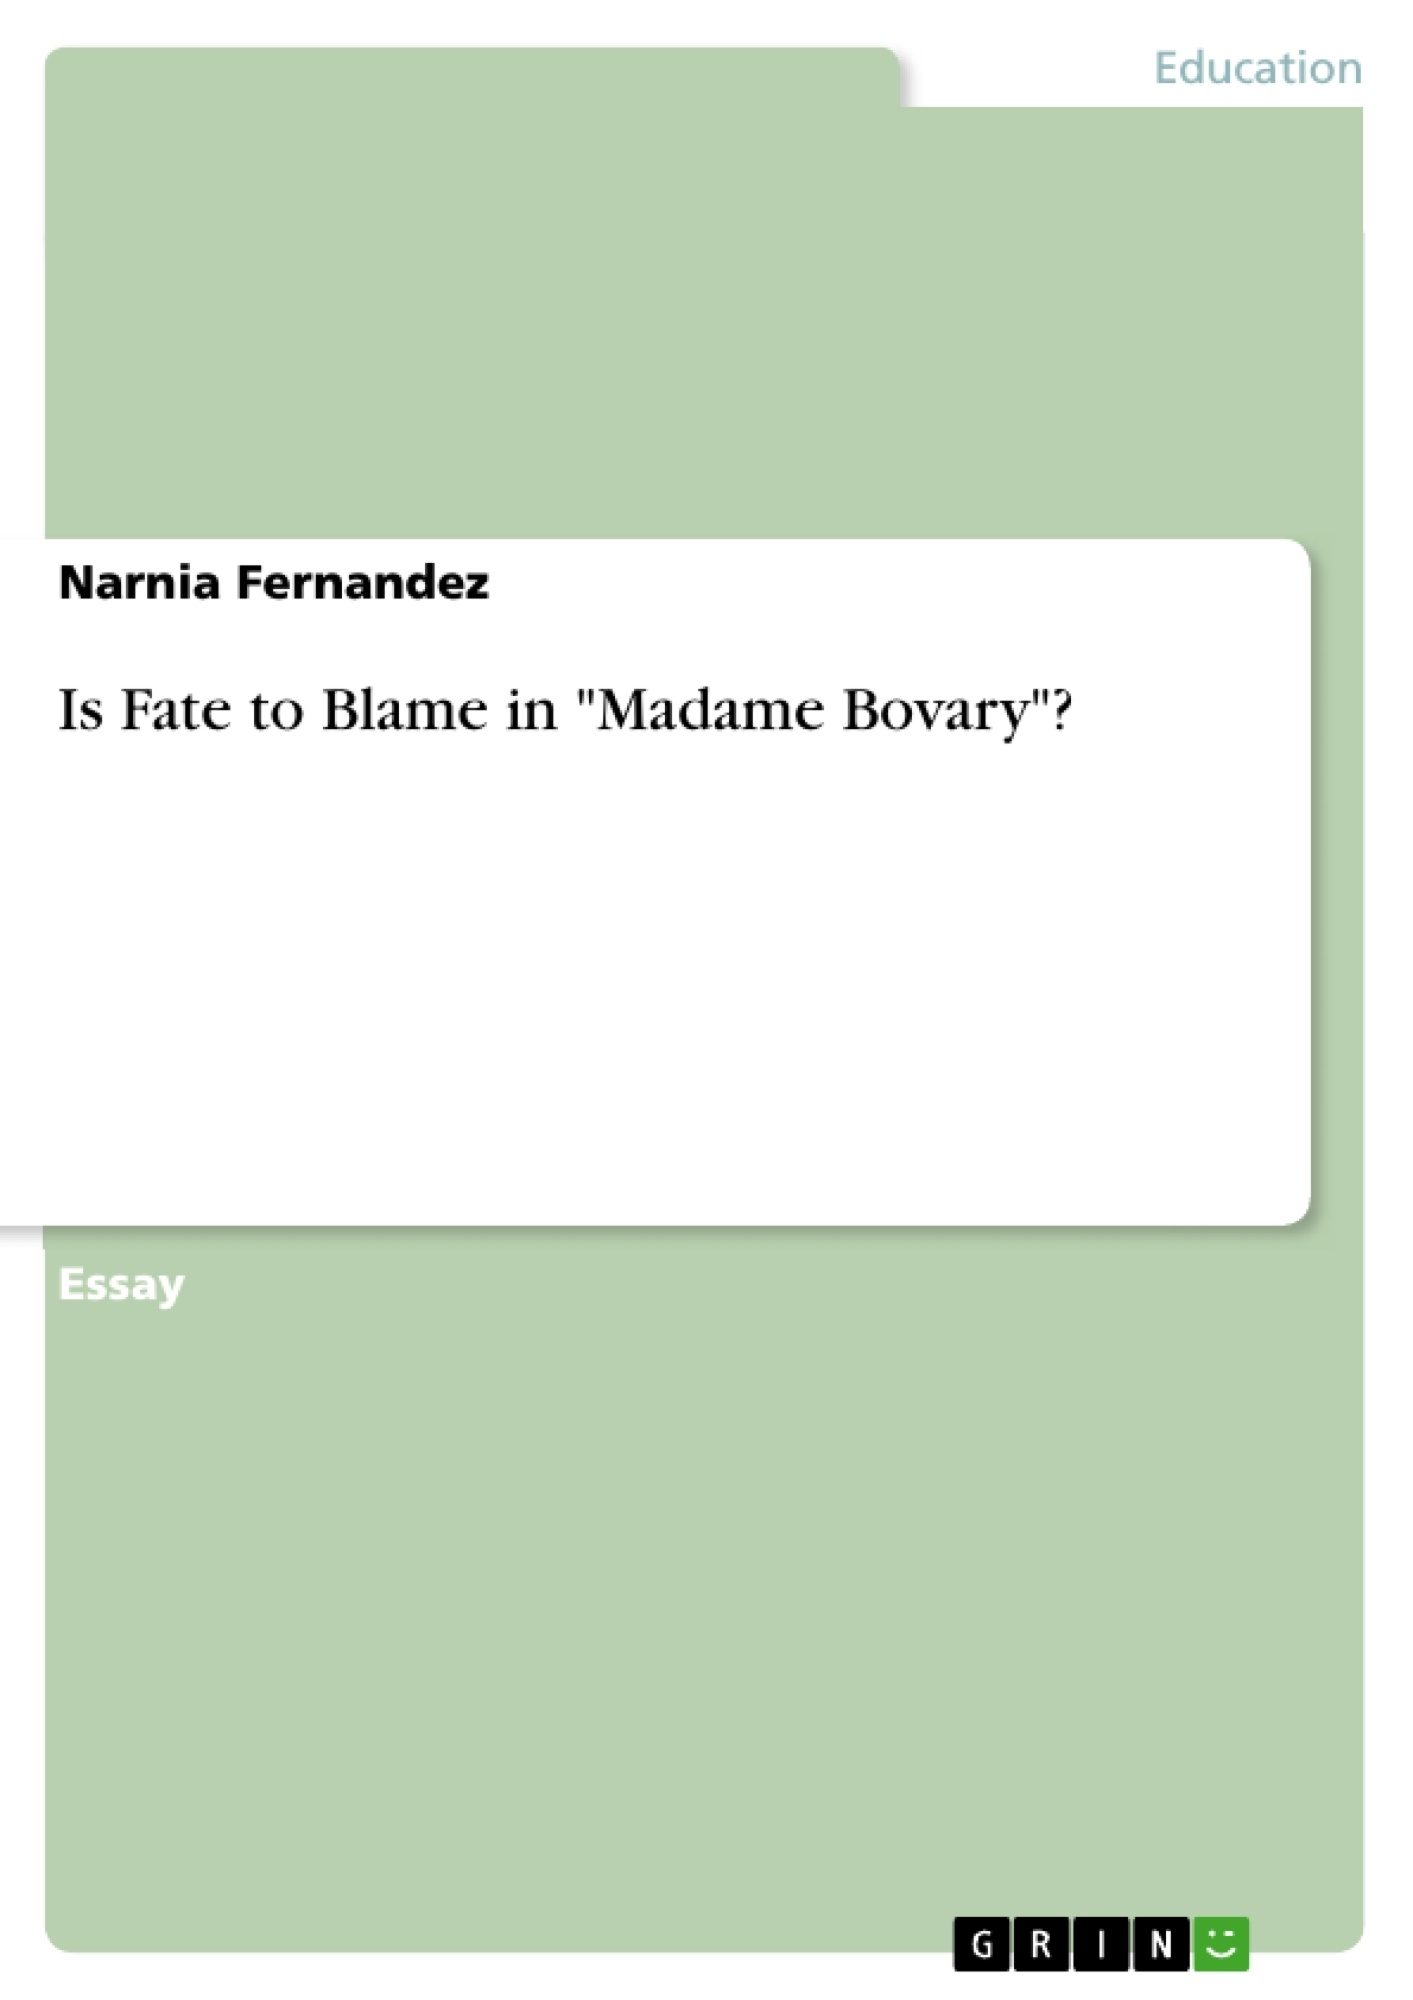 madame bovary essay topics is fate to blame in quotmadame bovaryquot publish your masters